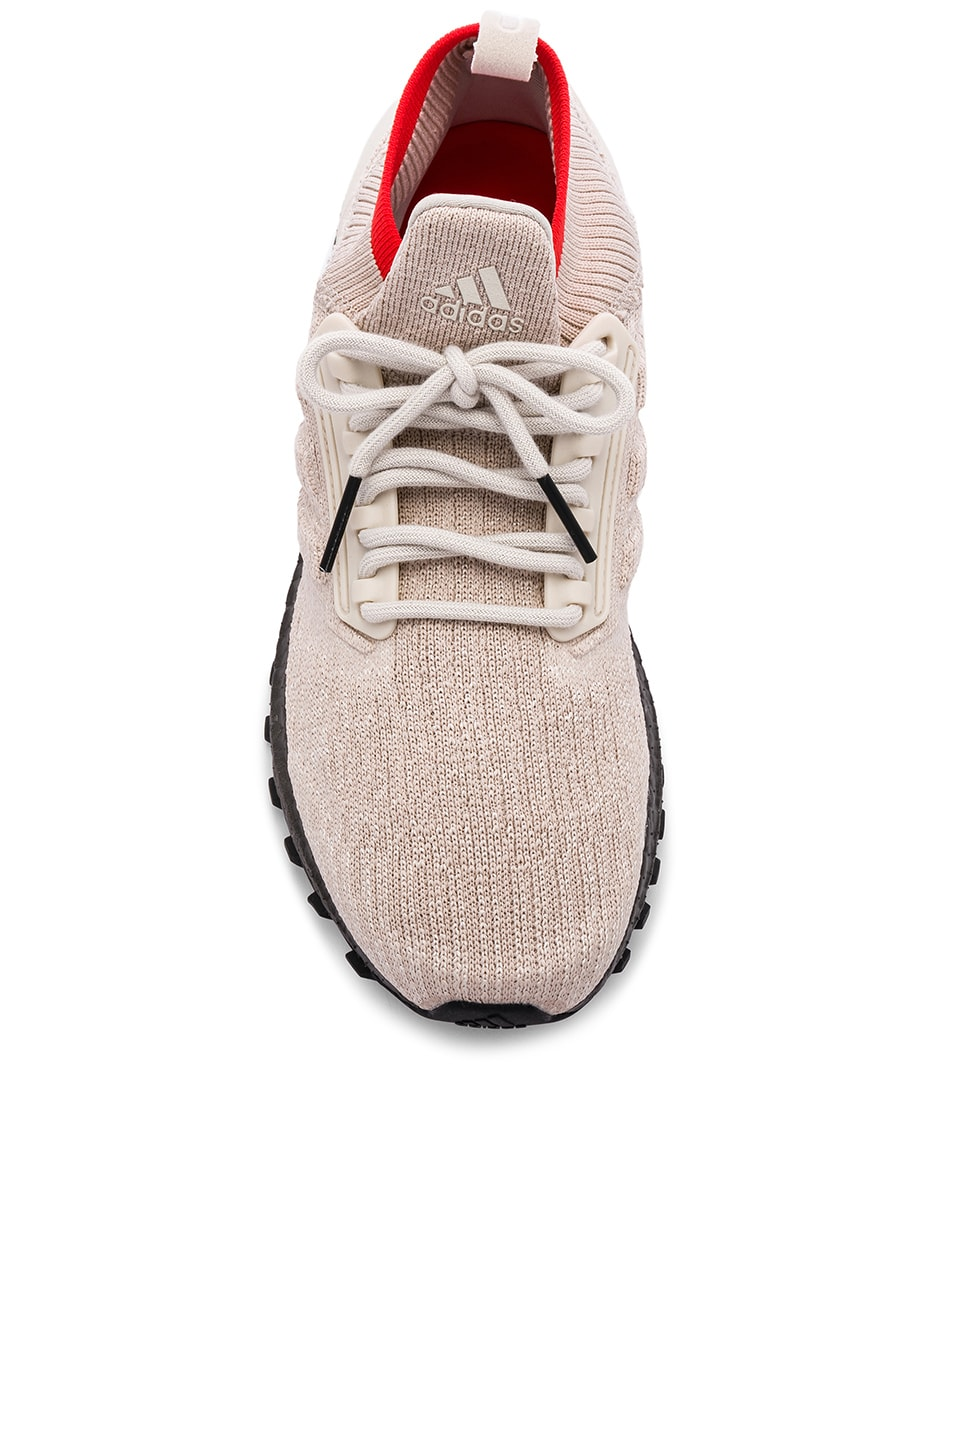 b9decaa5f37 Image 4 of adidas Originals UltraBoost All Terrain in Clear Brown   Clear  Brown   Black